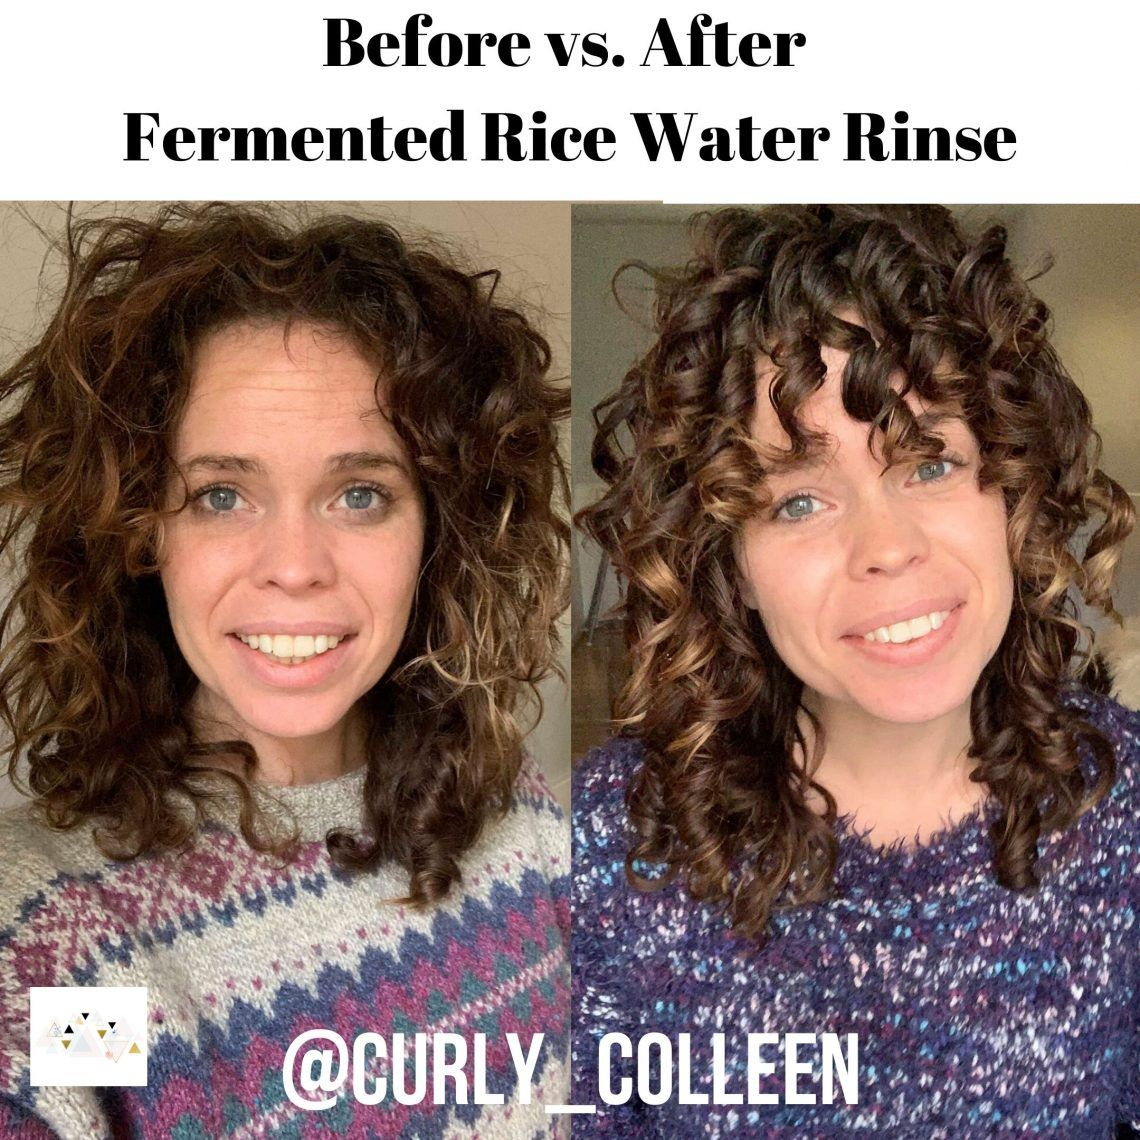 How To Make Rice Water For Curly Hair Colleen Charney In 2020 Curly Hair Styles Healthy Hair Routine Curly Hair Styles Naturally